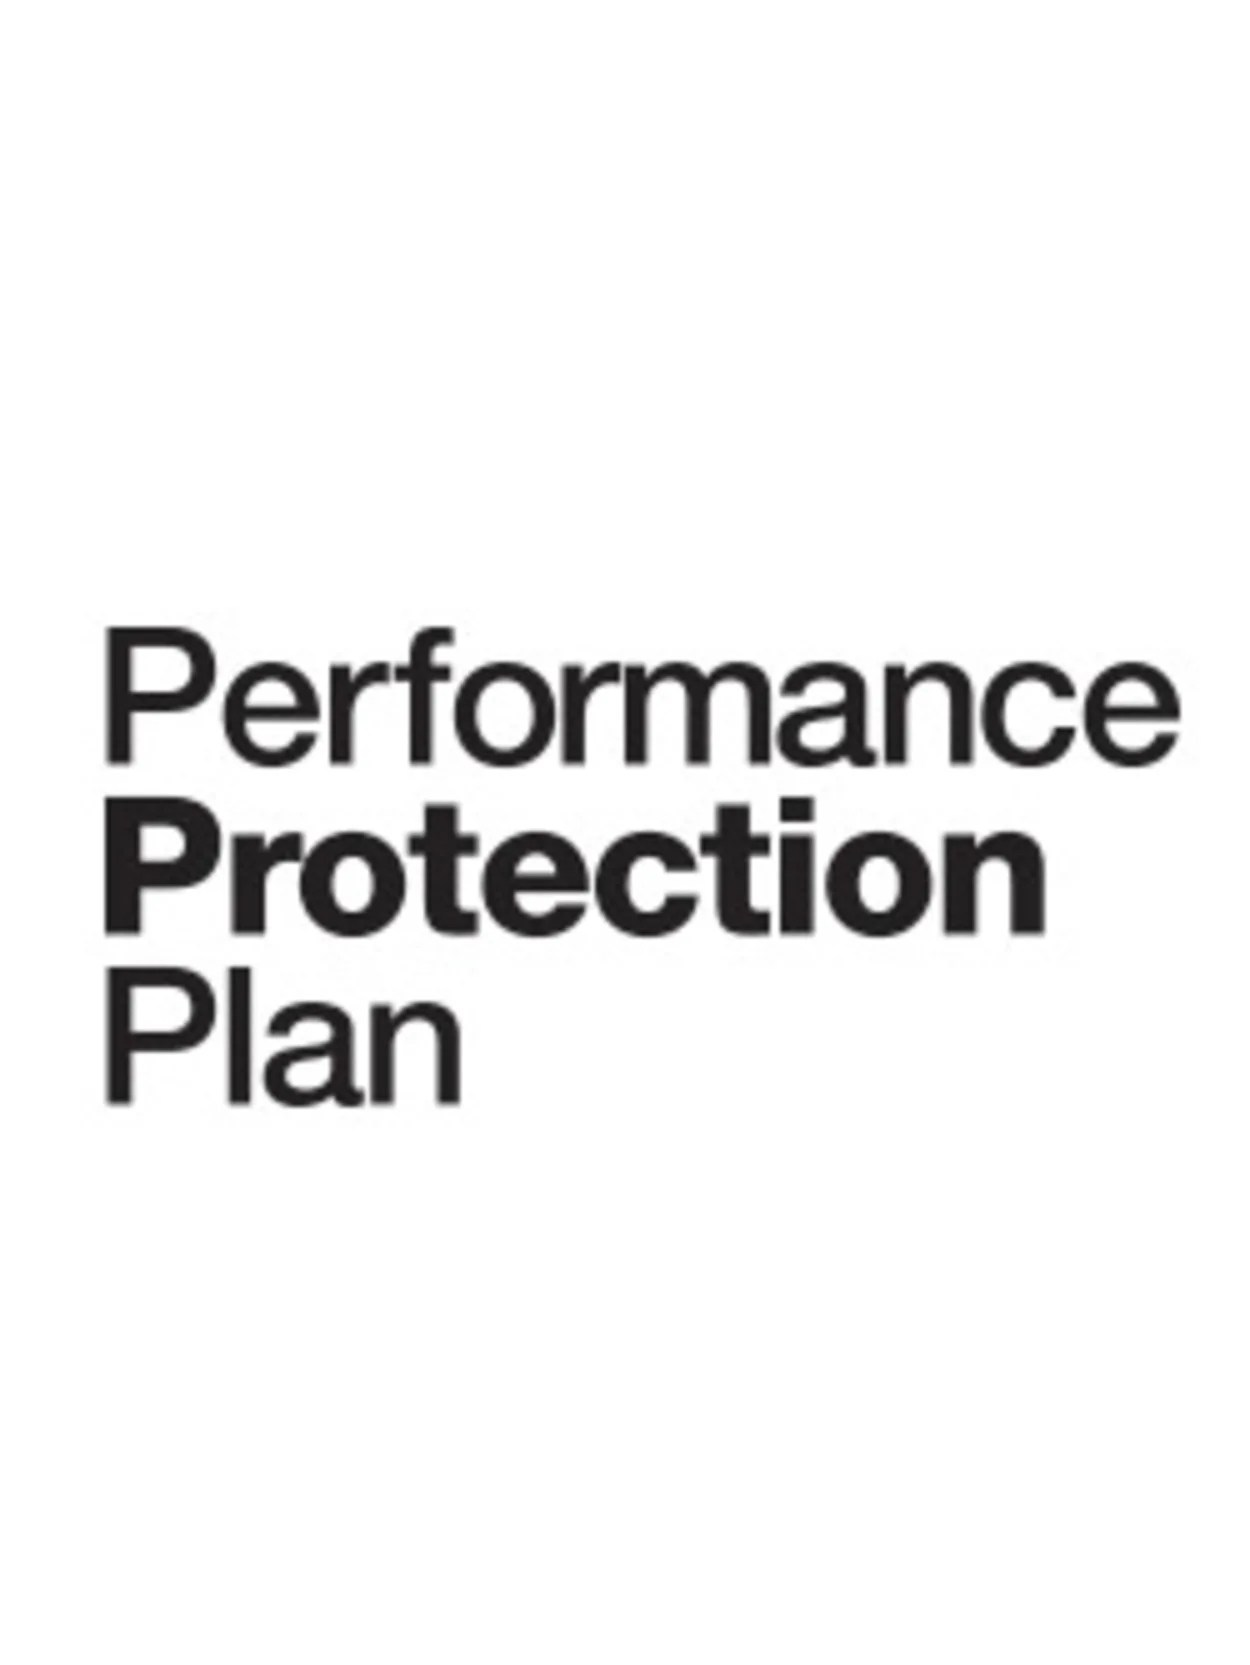 2 Year Product Replacement Plan Includes Coverage For Accidental